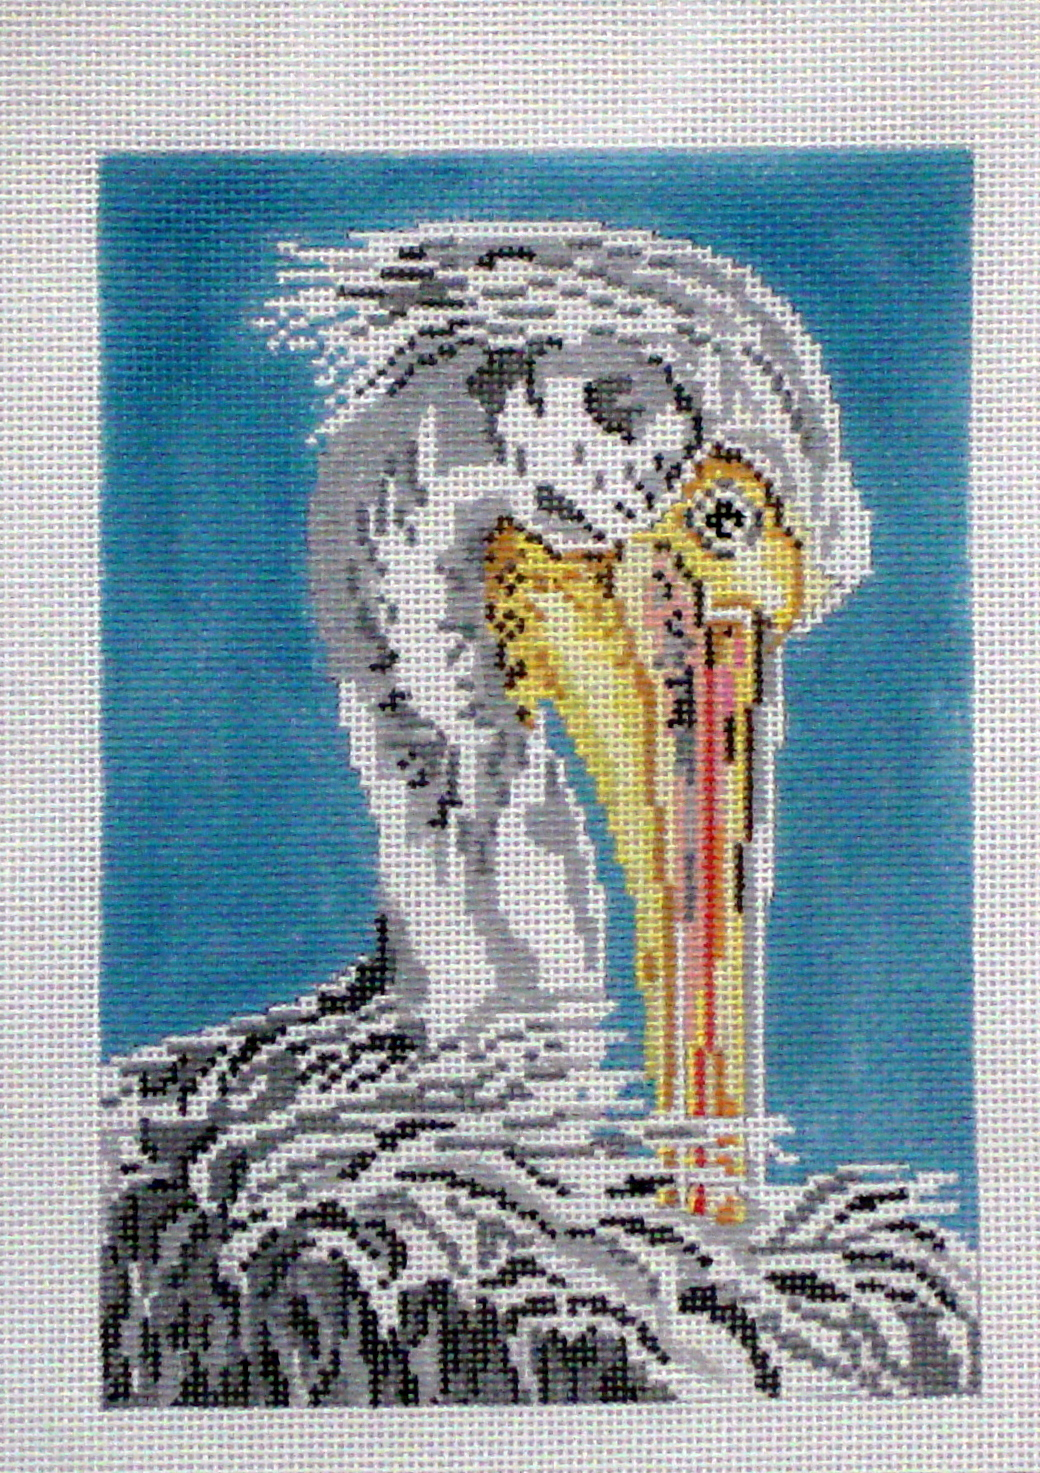 White Pelican (Handpainted by Needle Crossings) 18*1629-13